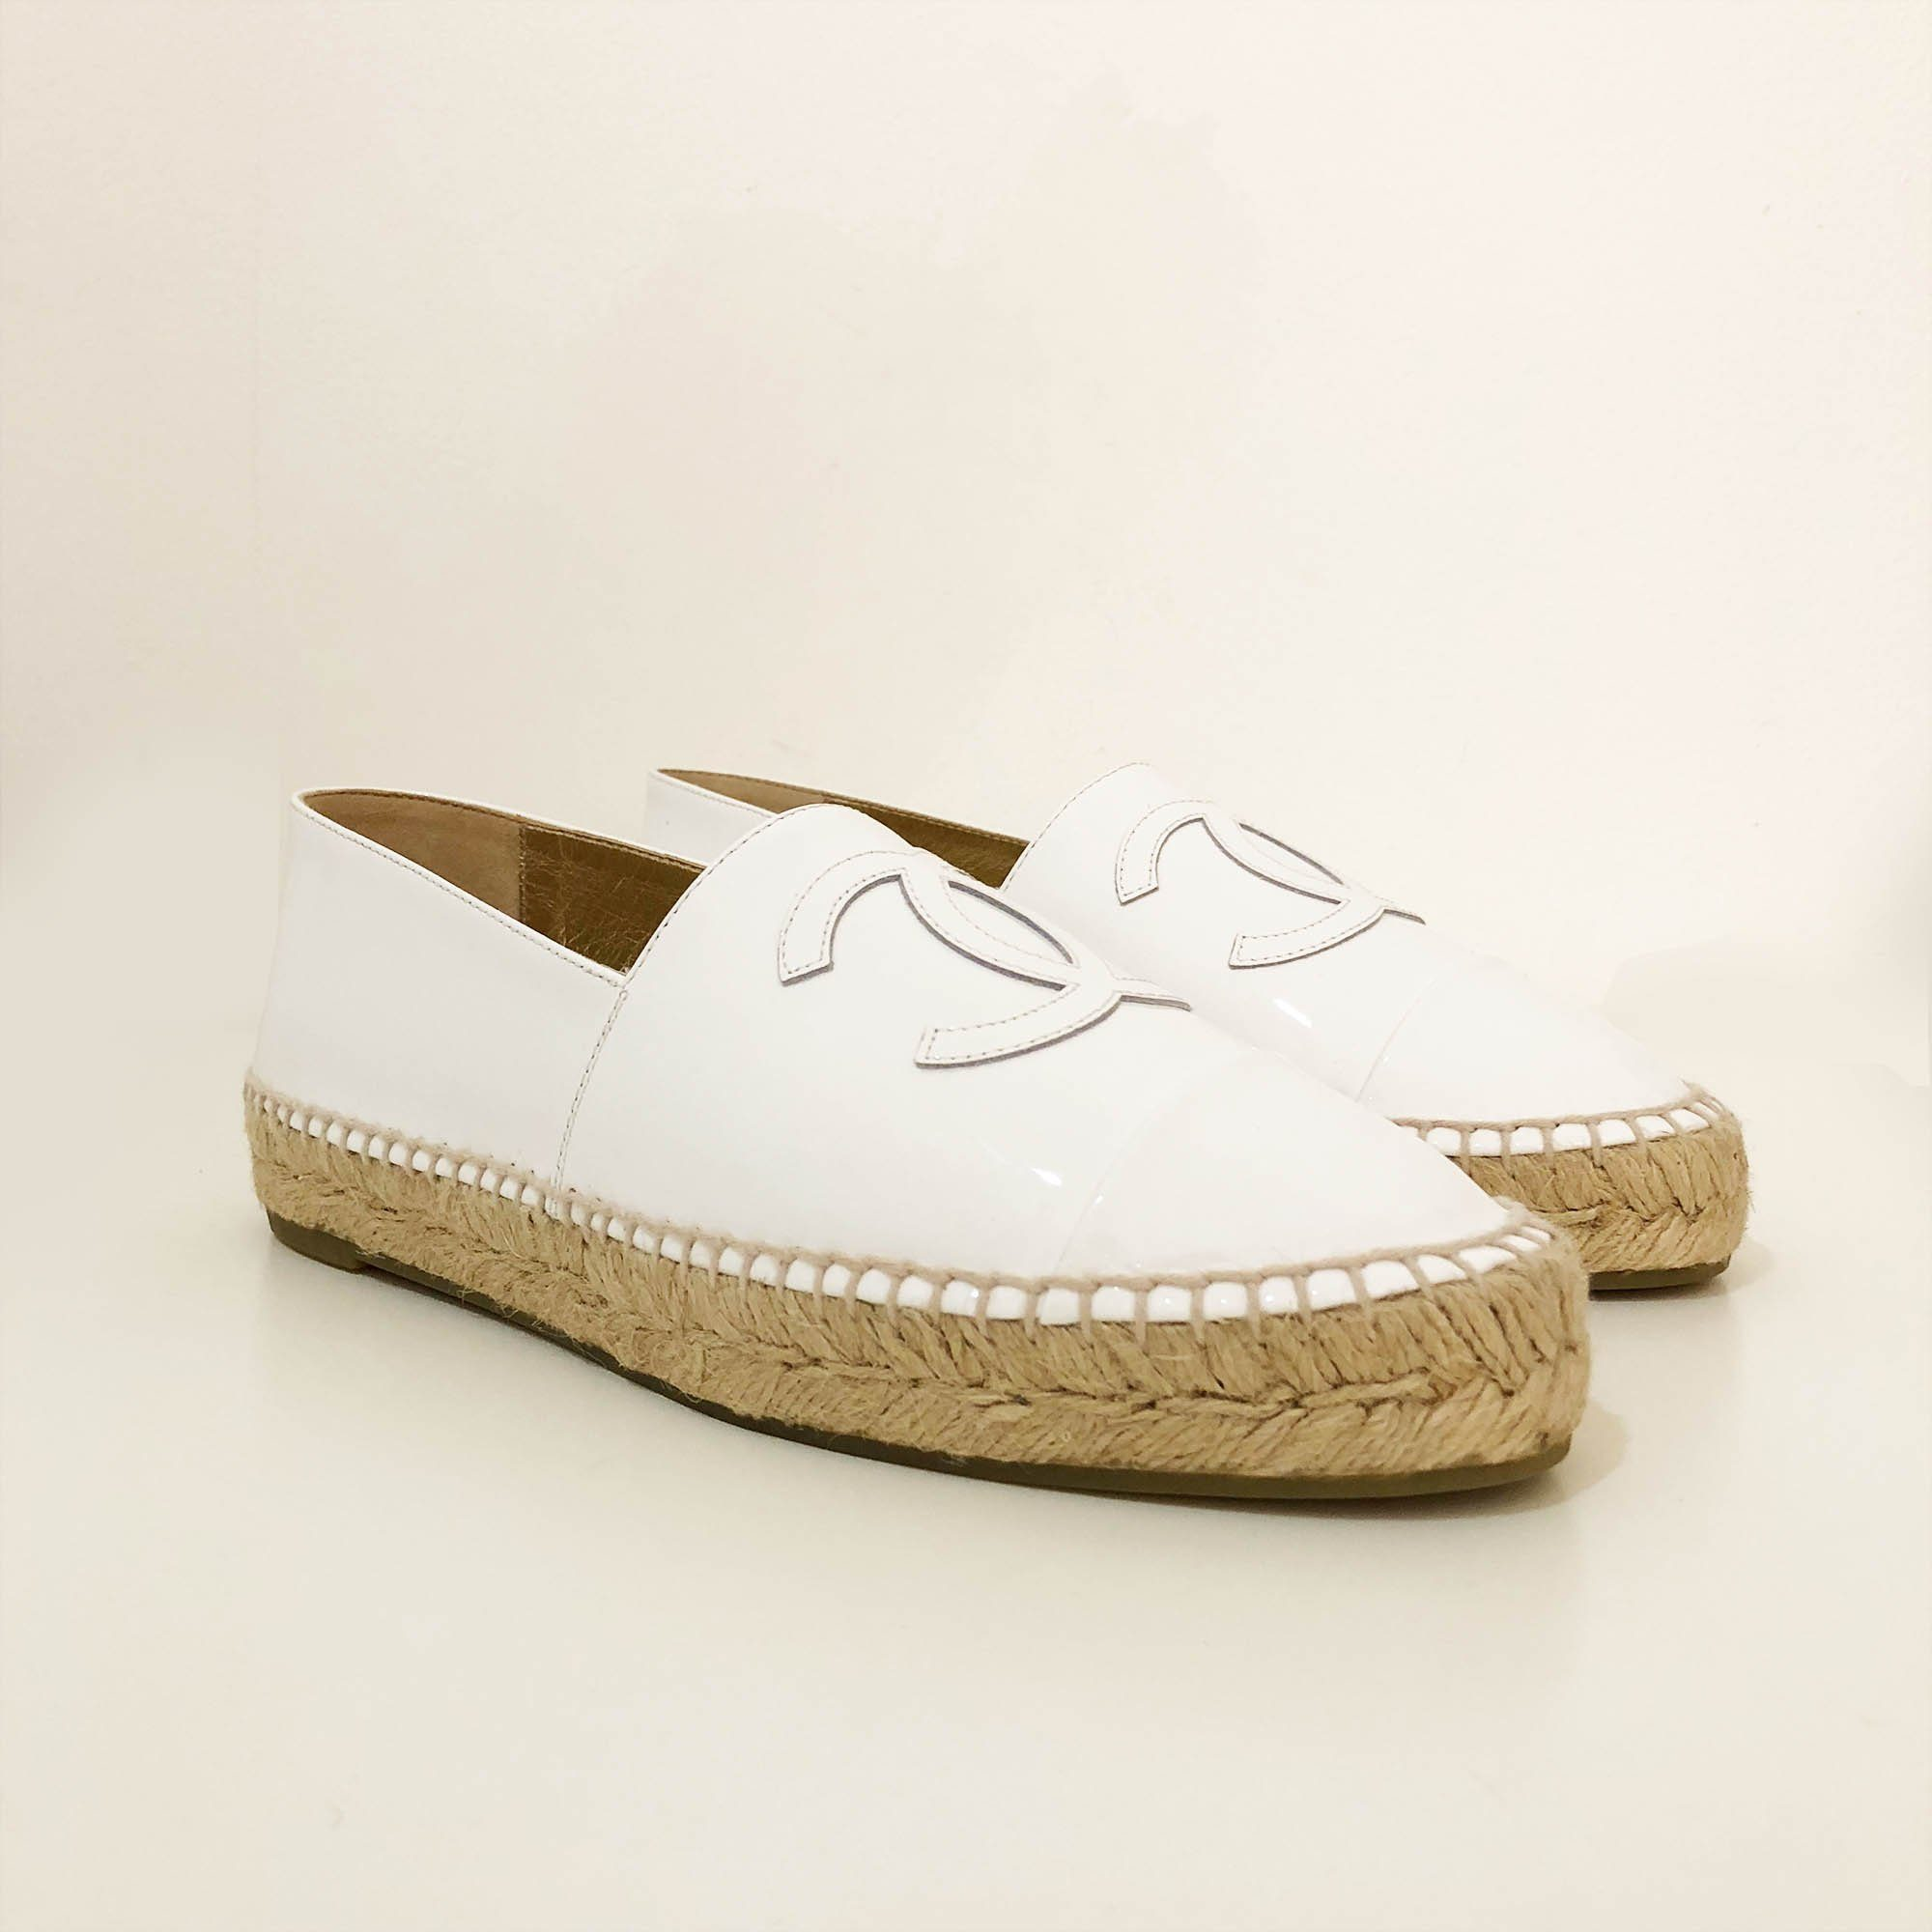 Chanel White Patent Leather Espadrille Flats